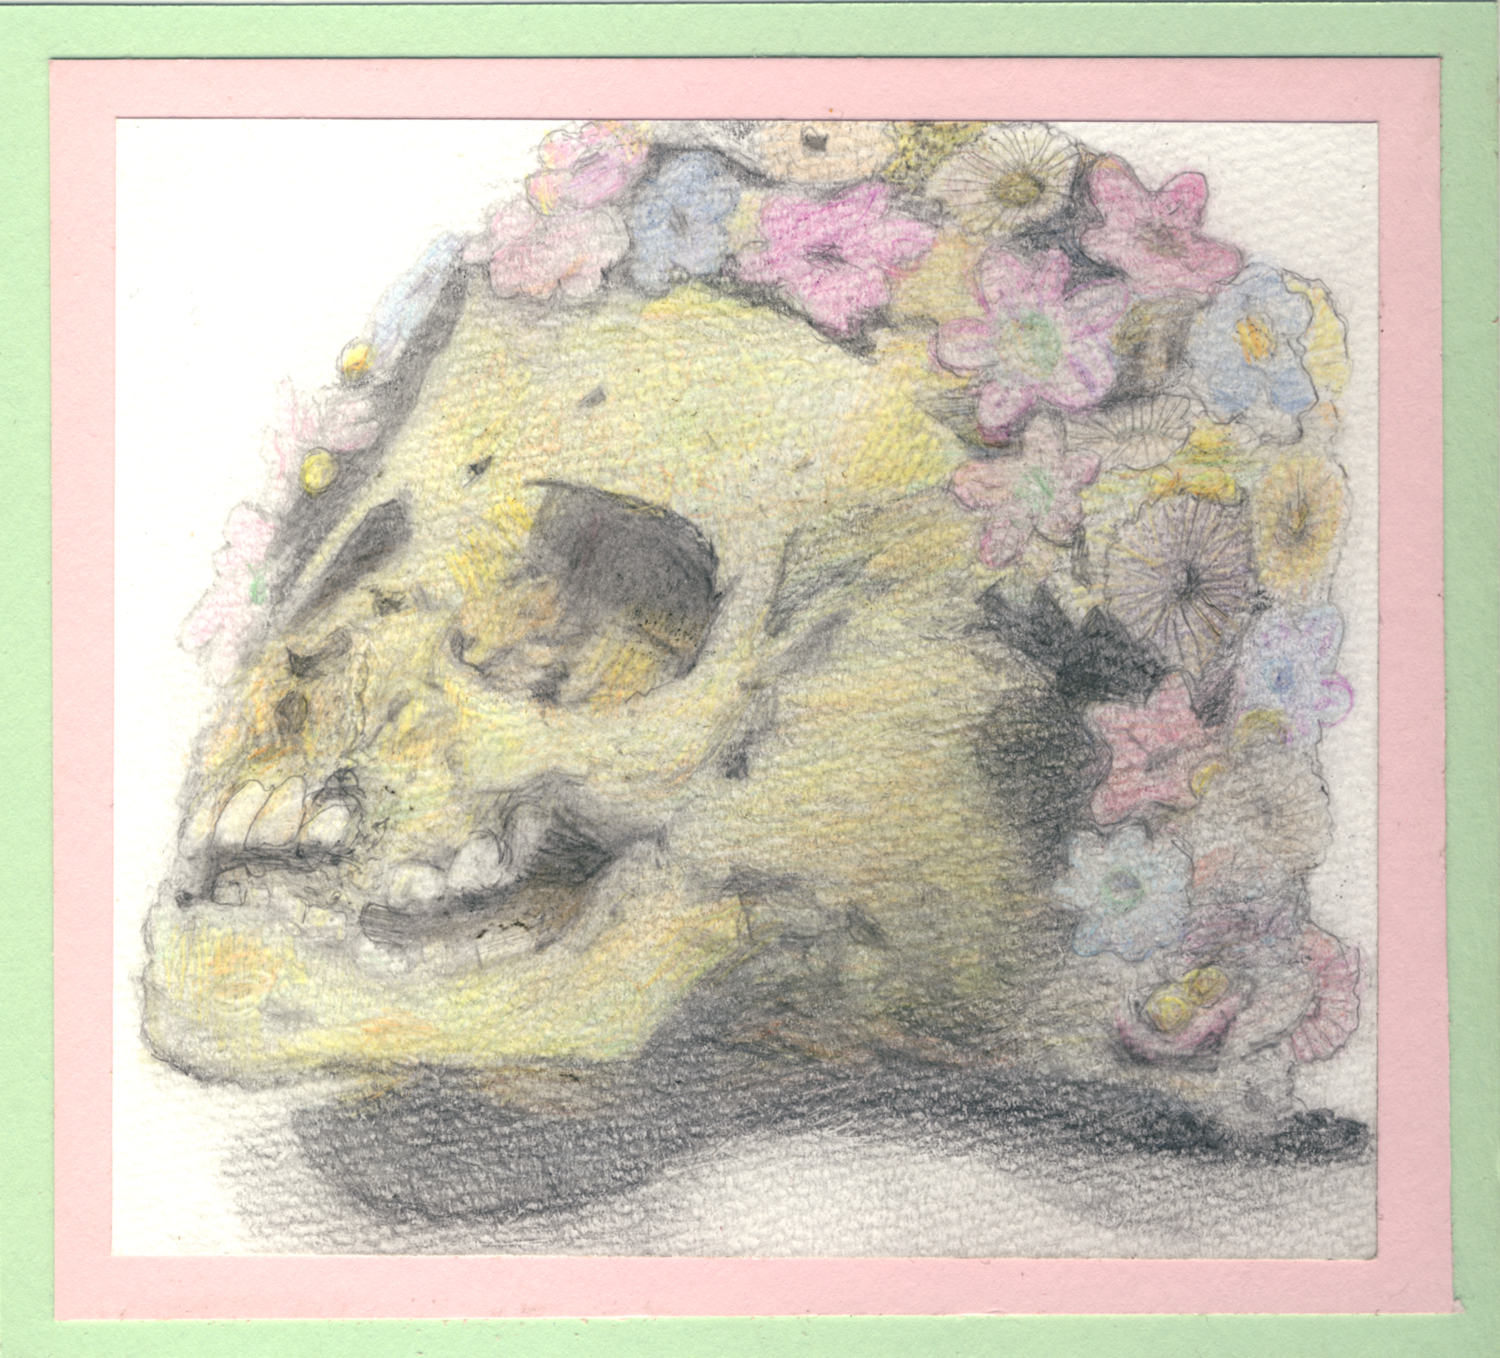 Skull with Flower Covering